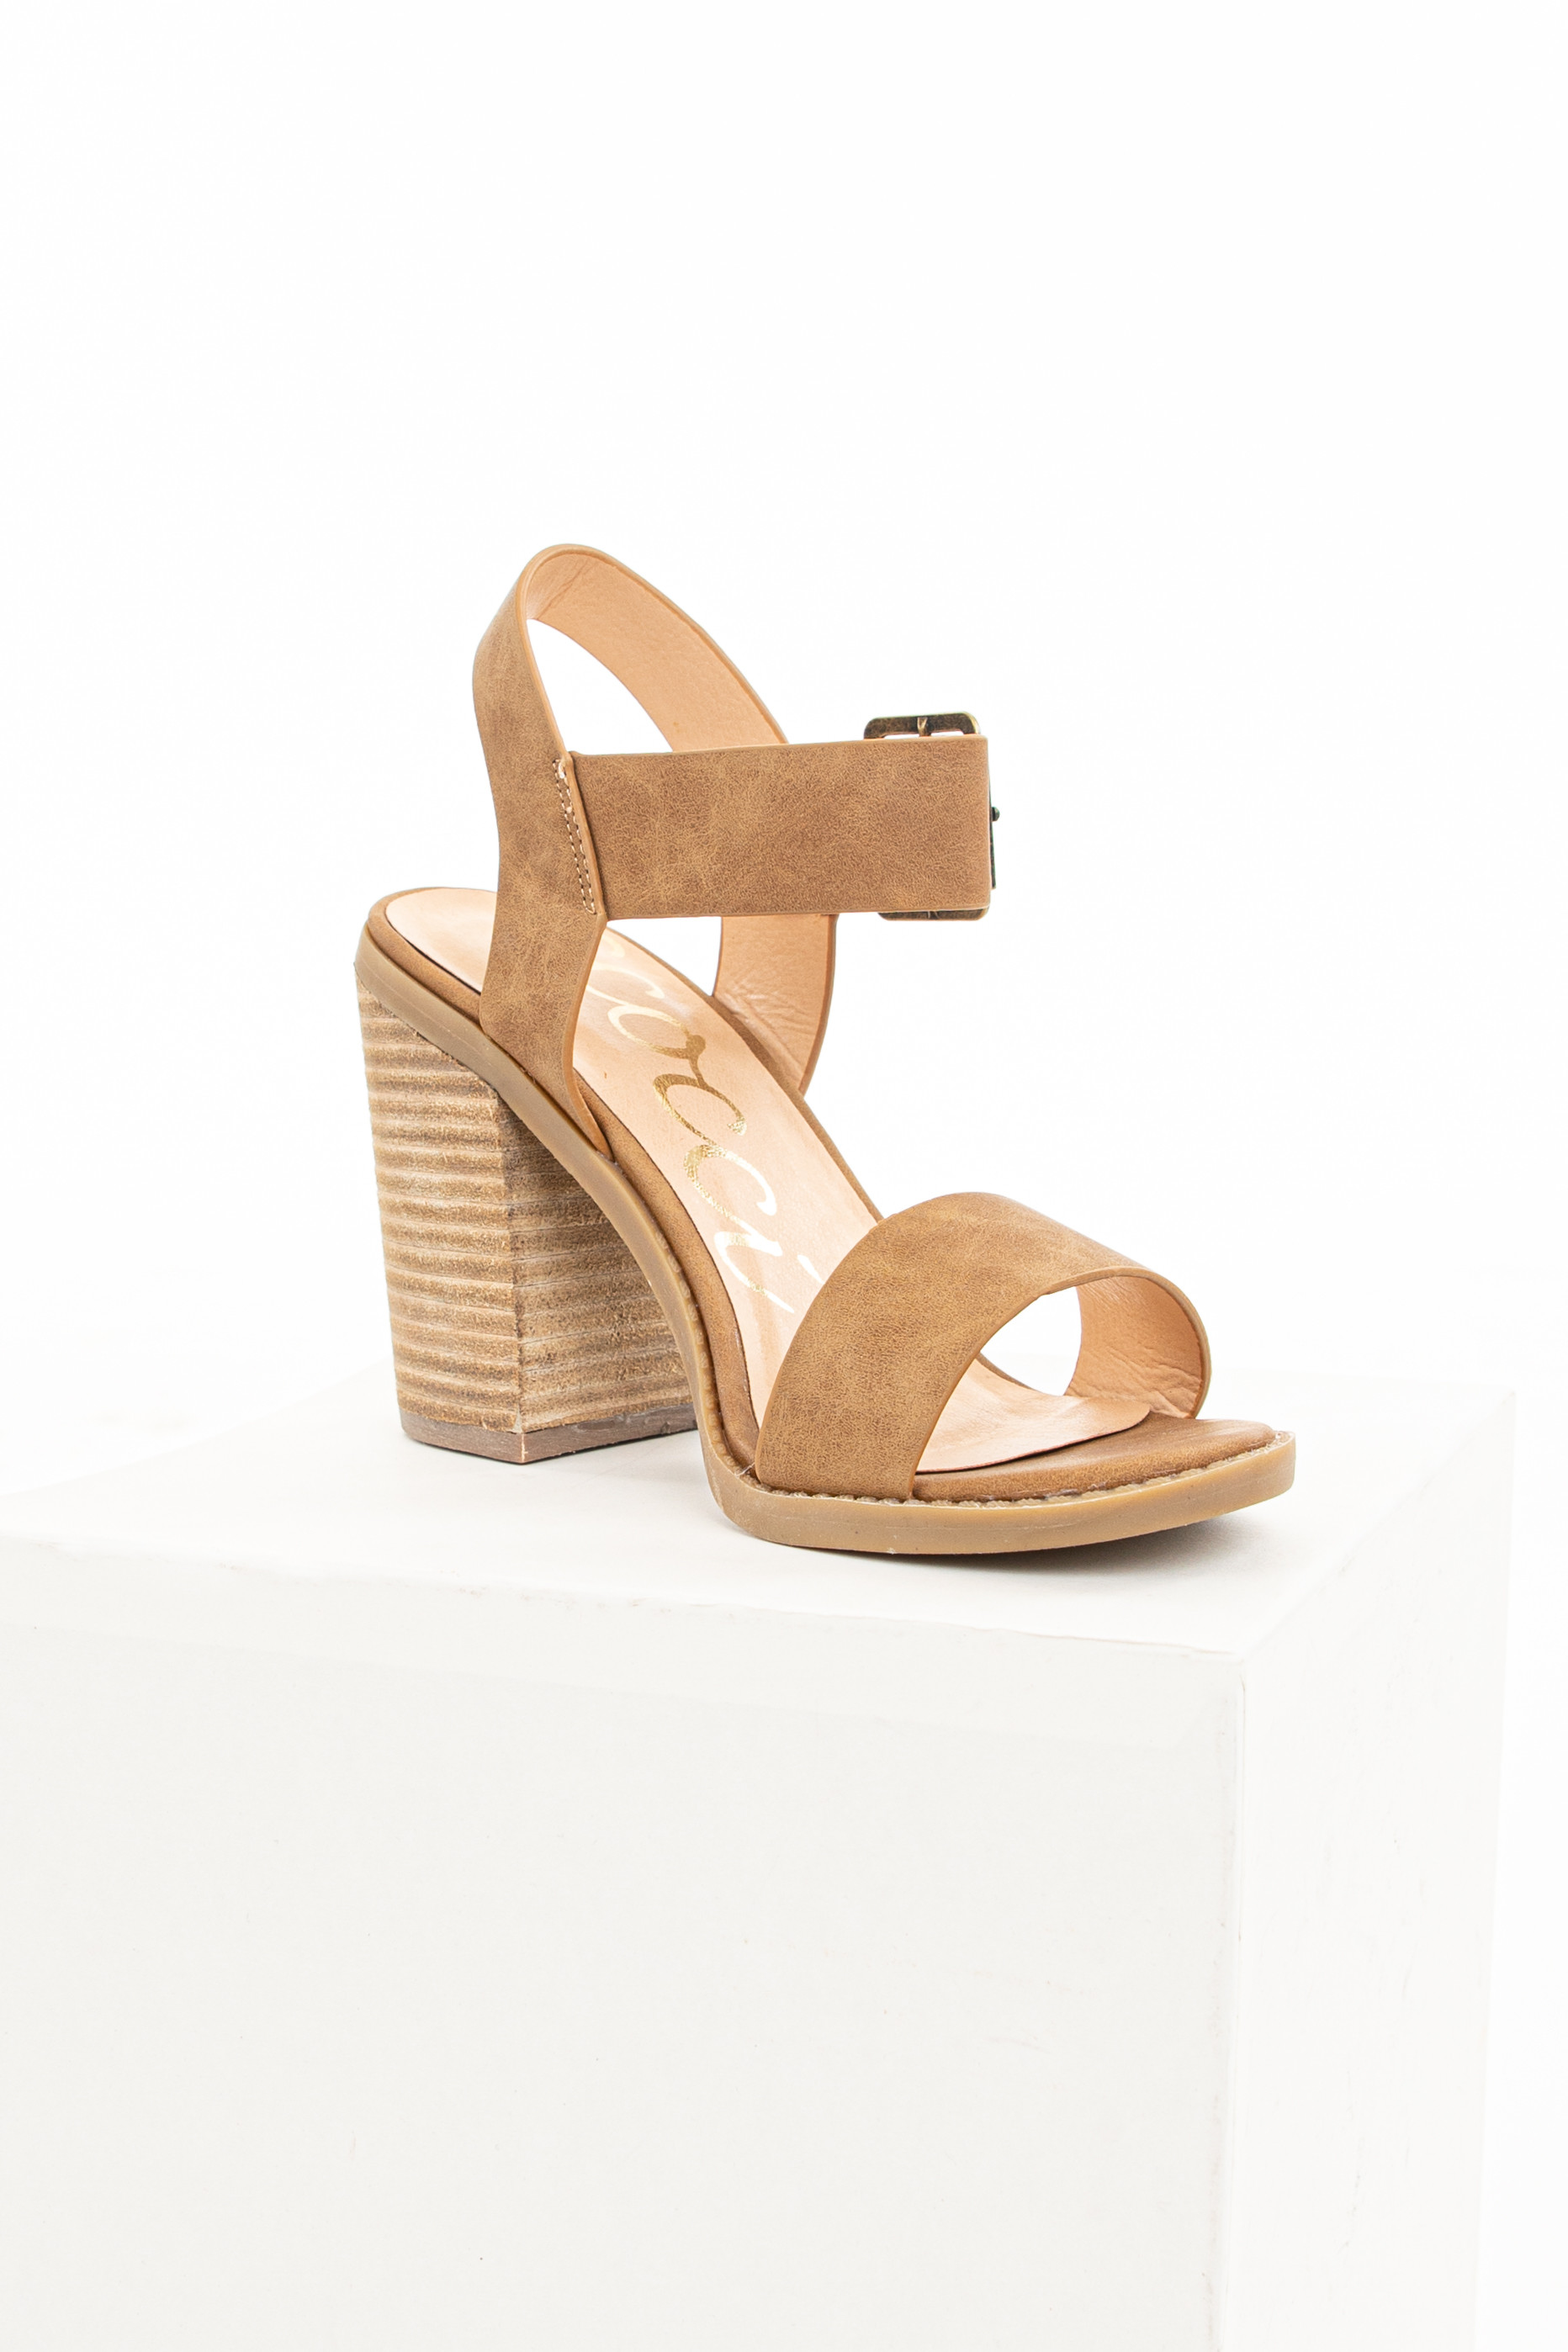 Camel Open Toe Sandal with Chunky Stacked Heel